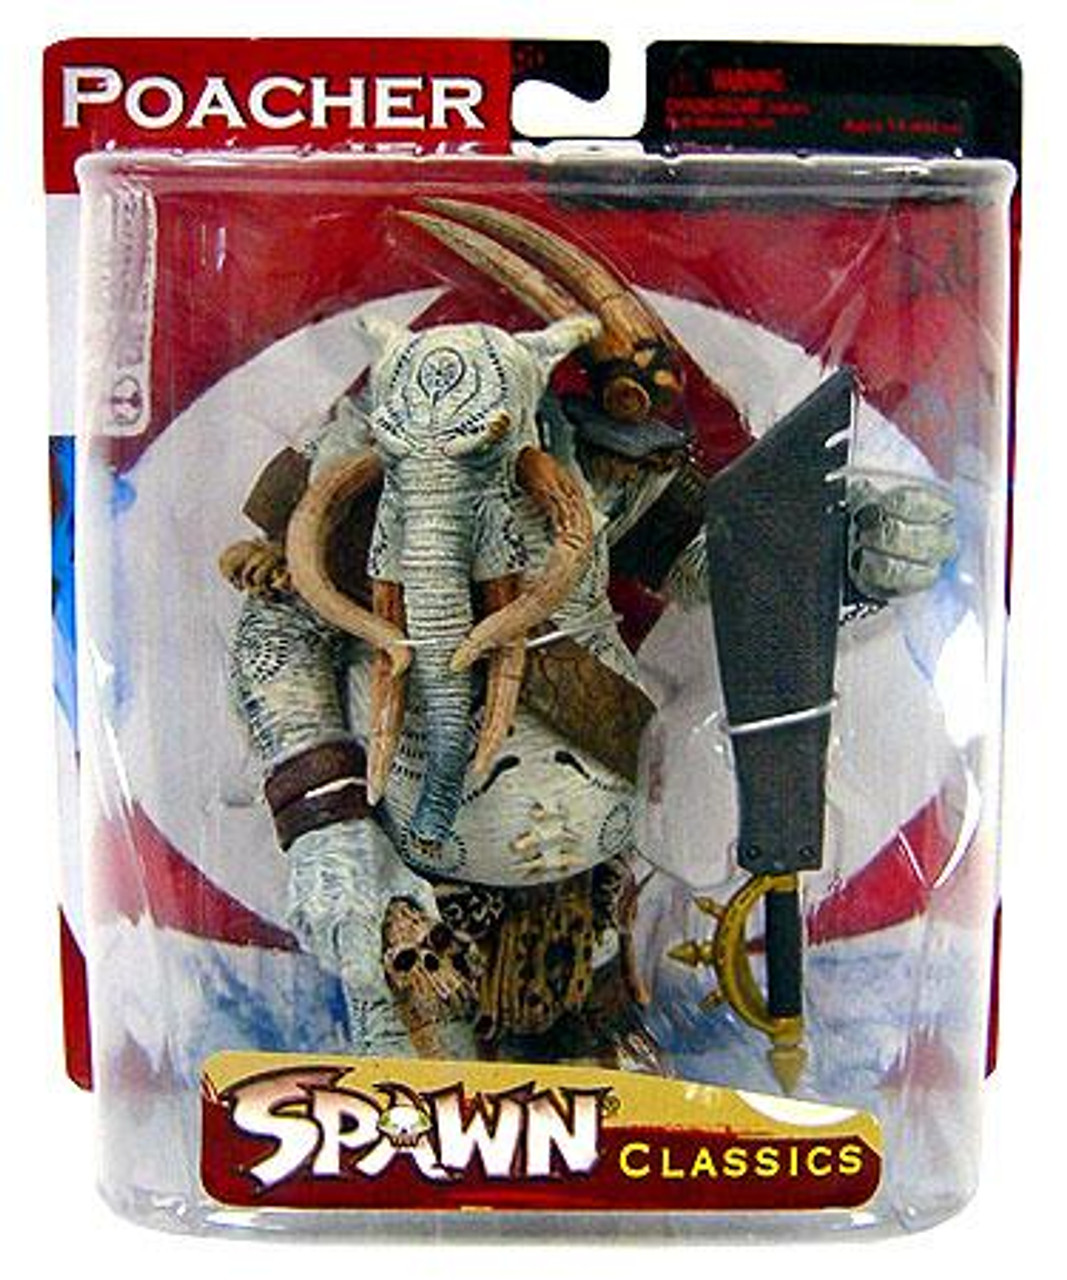 McFarlane Toys Spawn Series 34 Neo-Classics Poacher 2 Action Figure